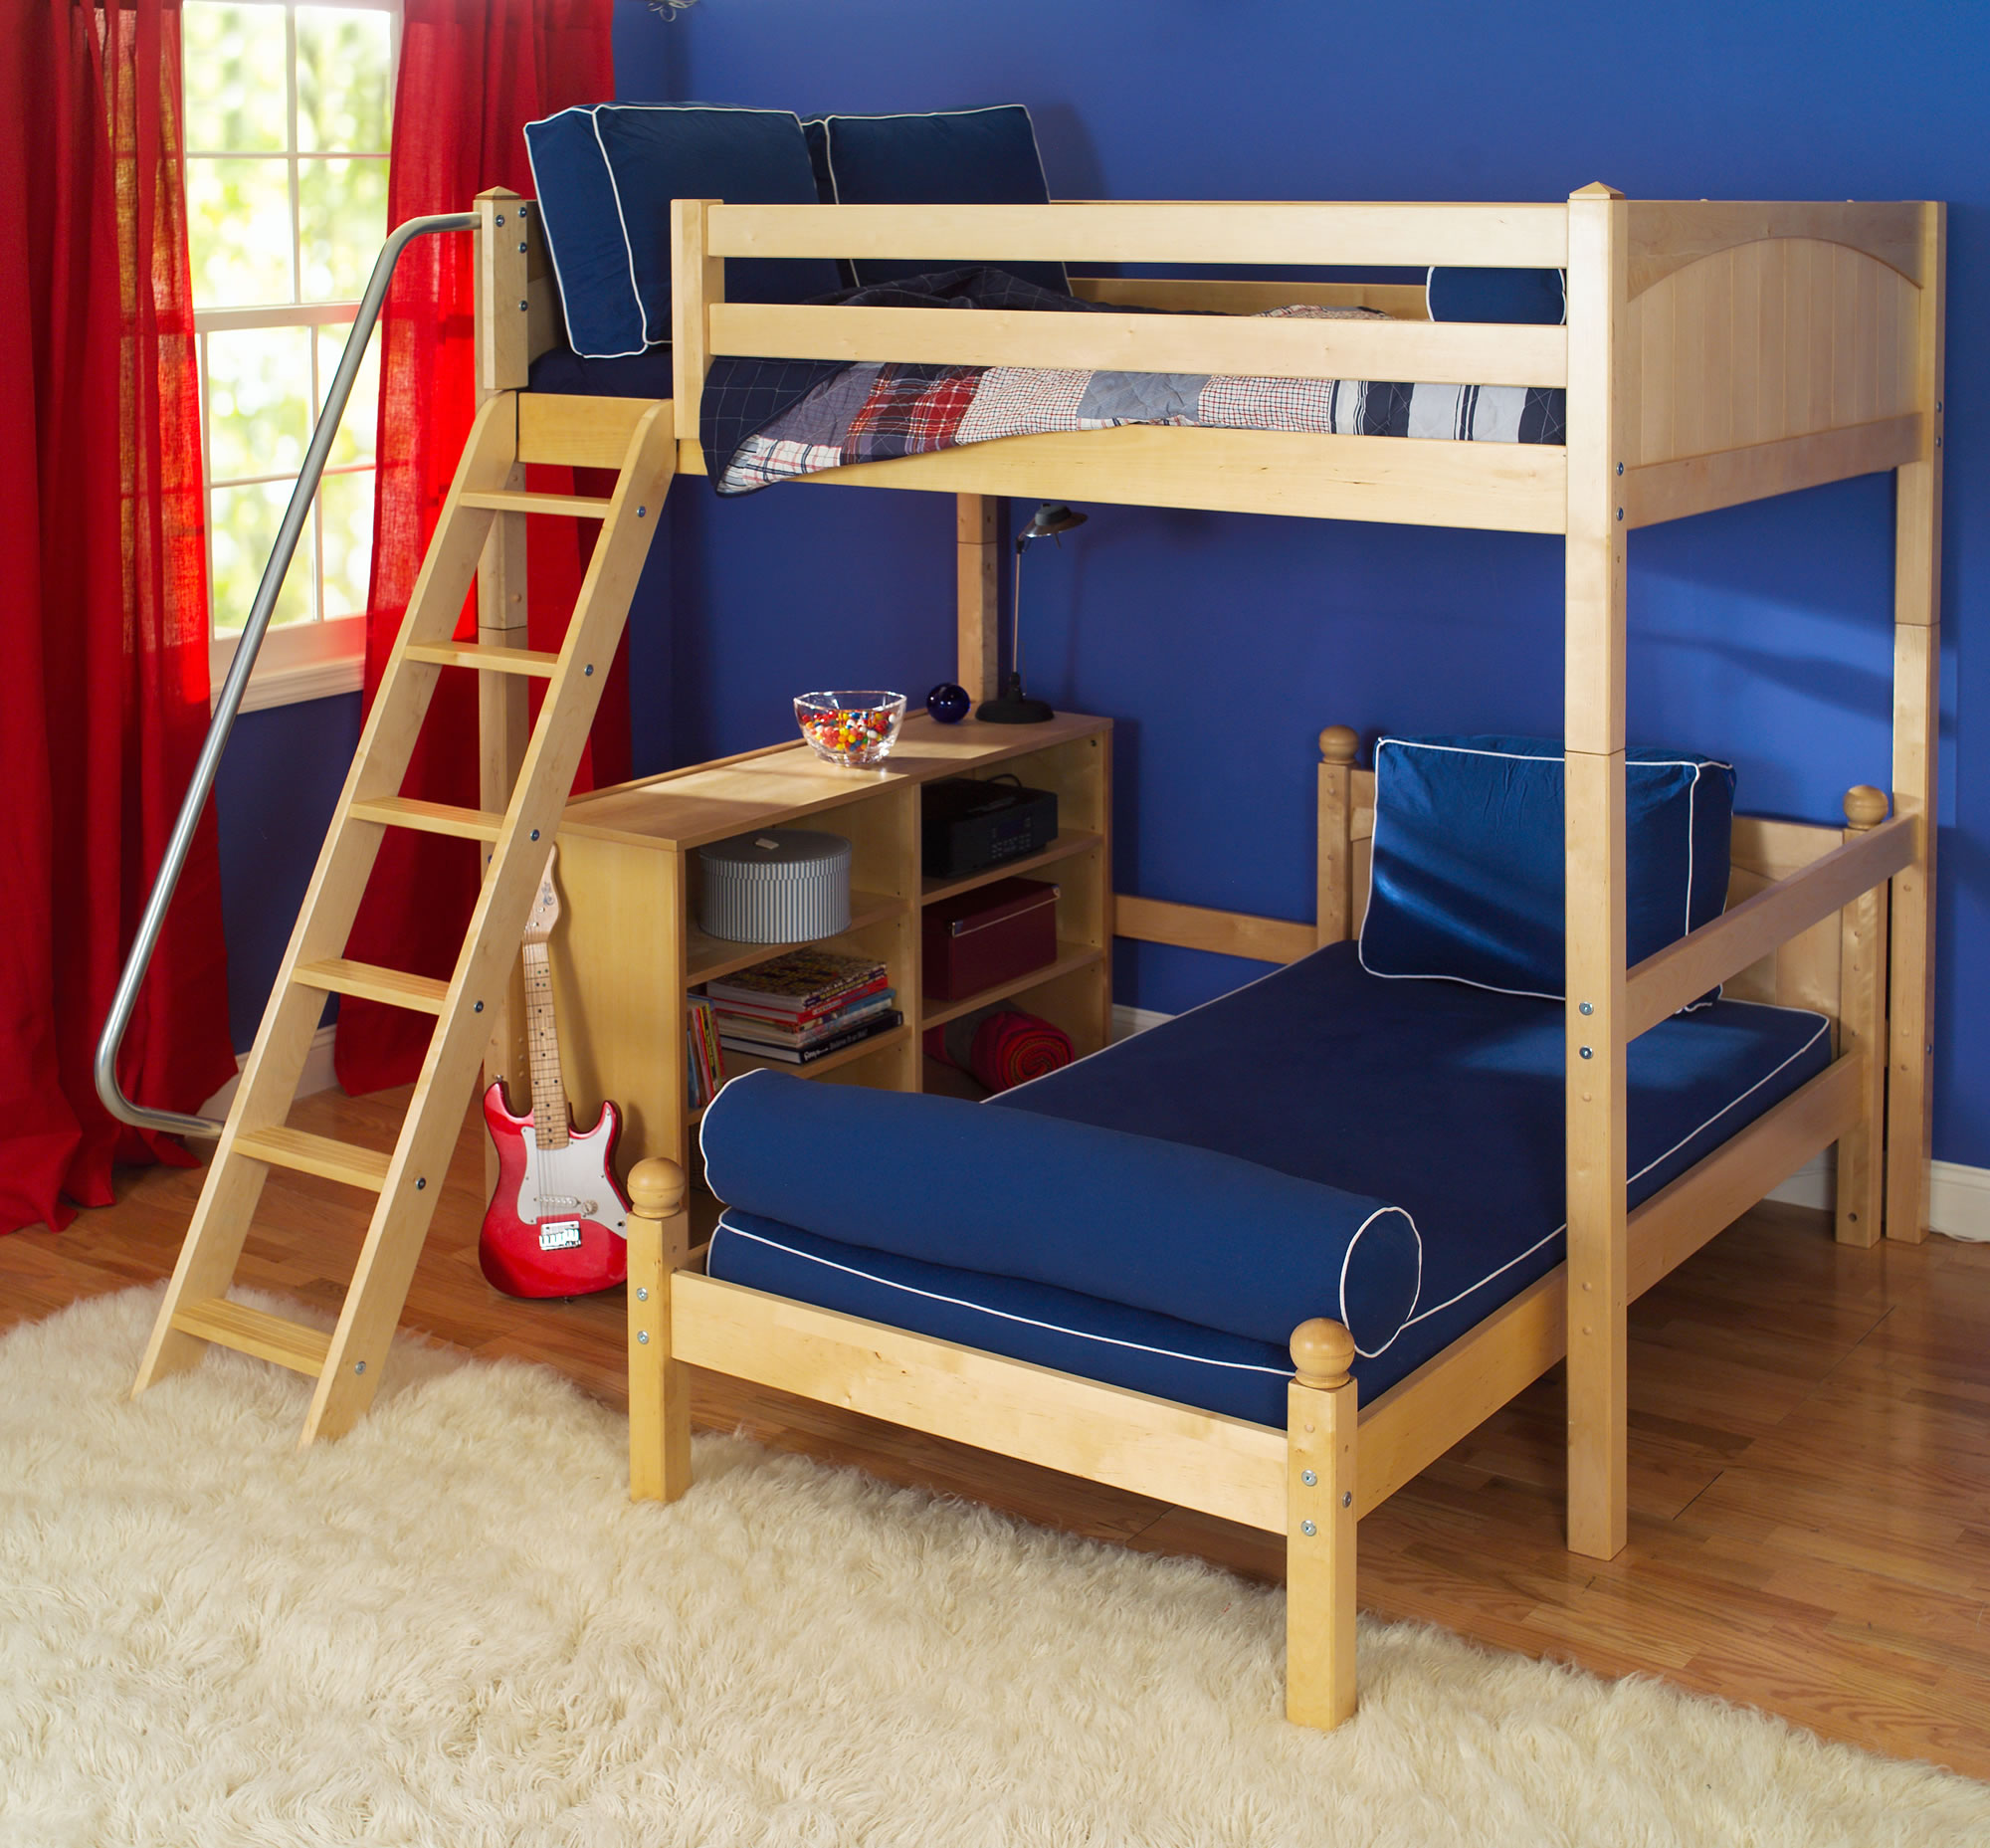 L shaped bunk bed plans bed plans diy blueprints for Bunk bed design ideas